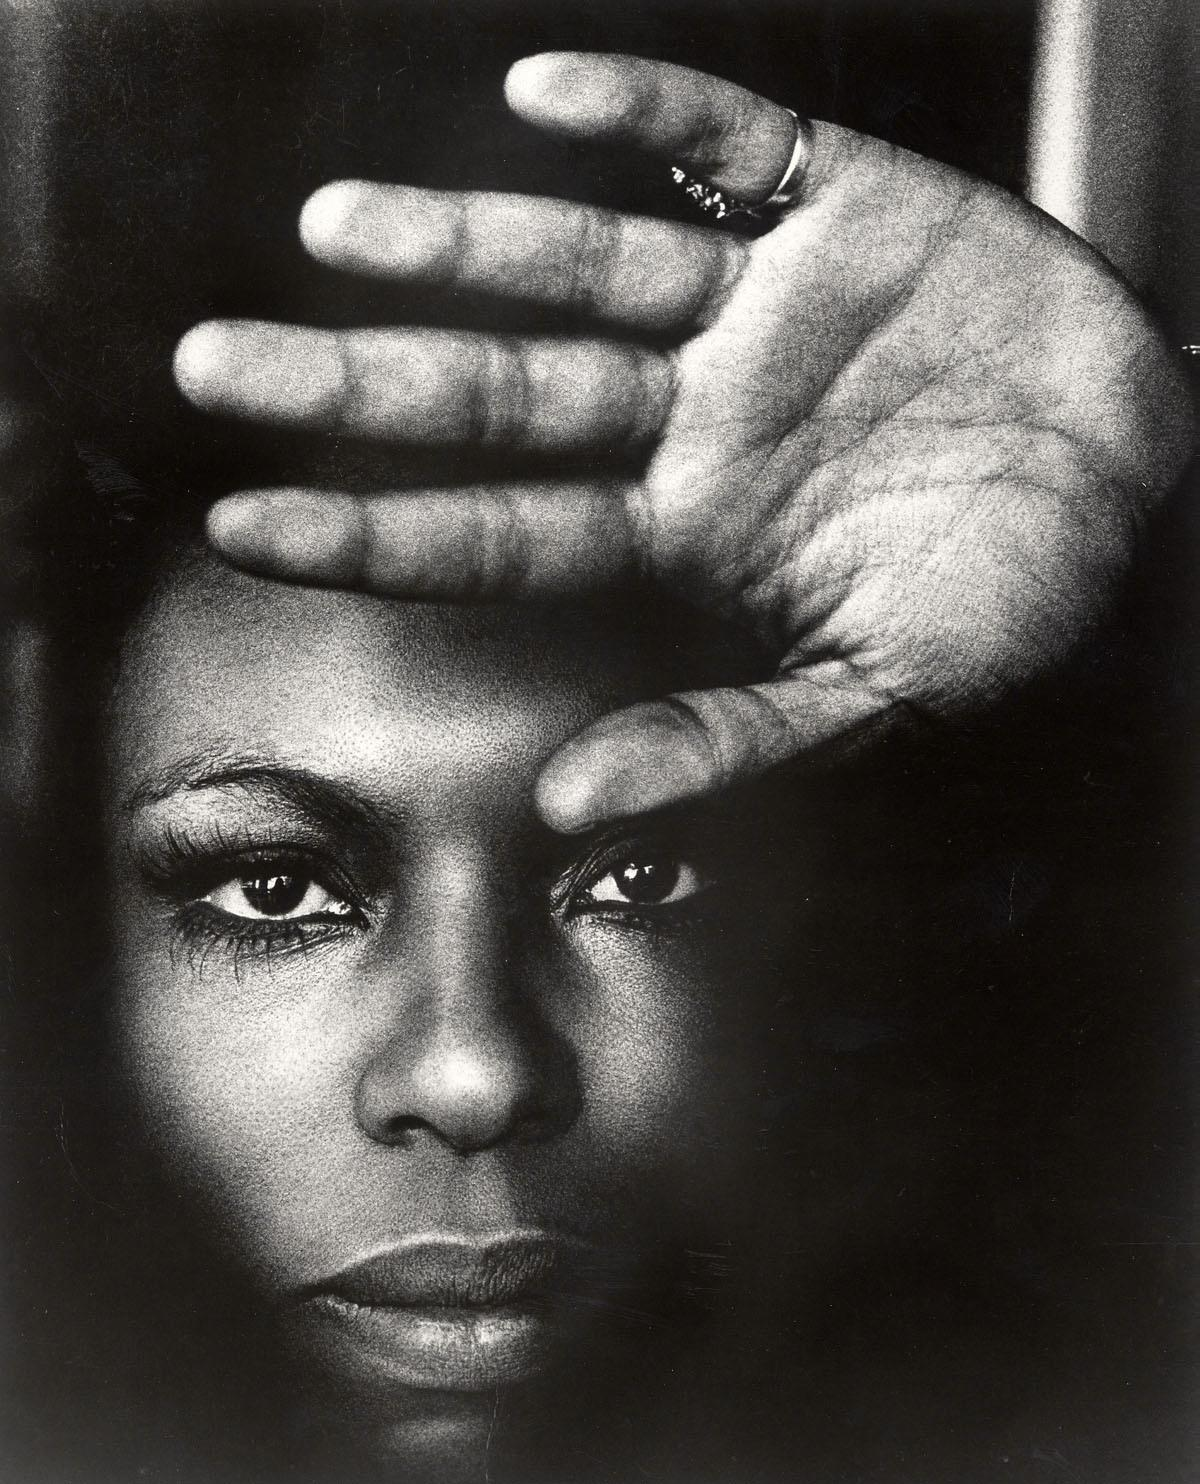 Caption: Roberta Flack